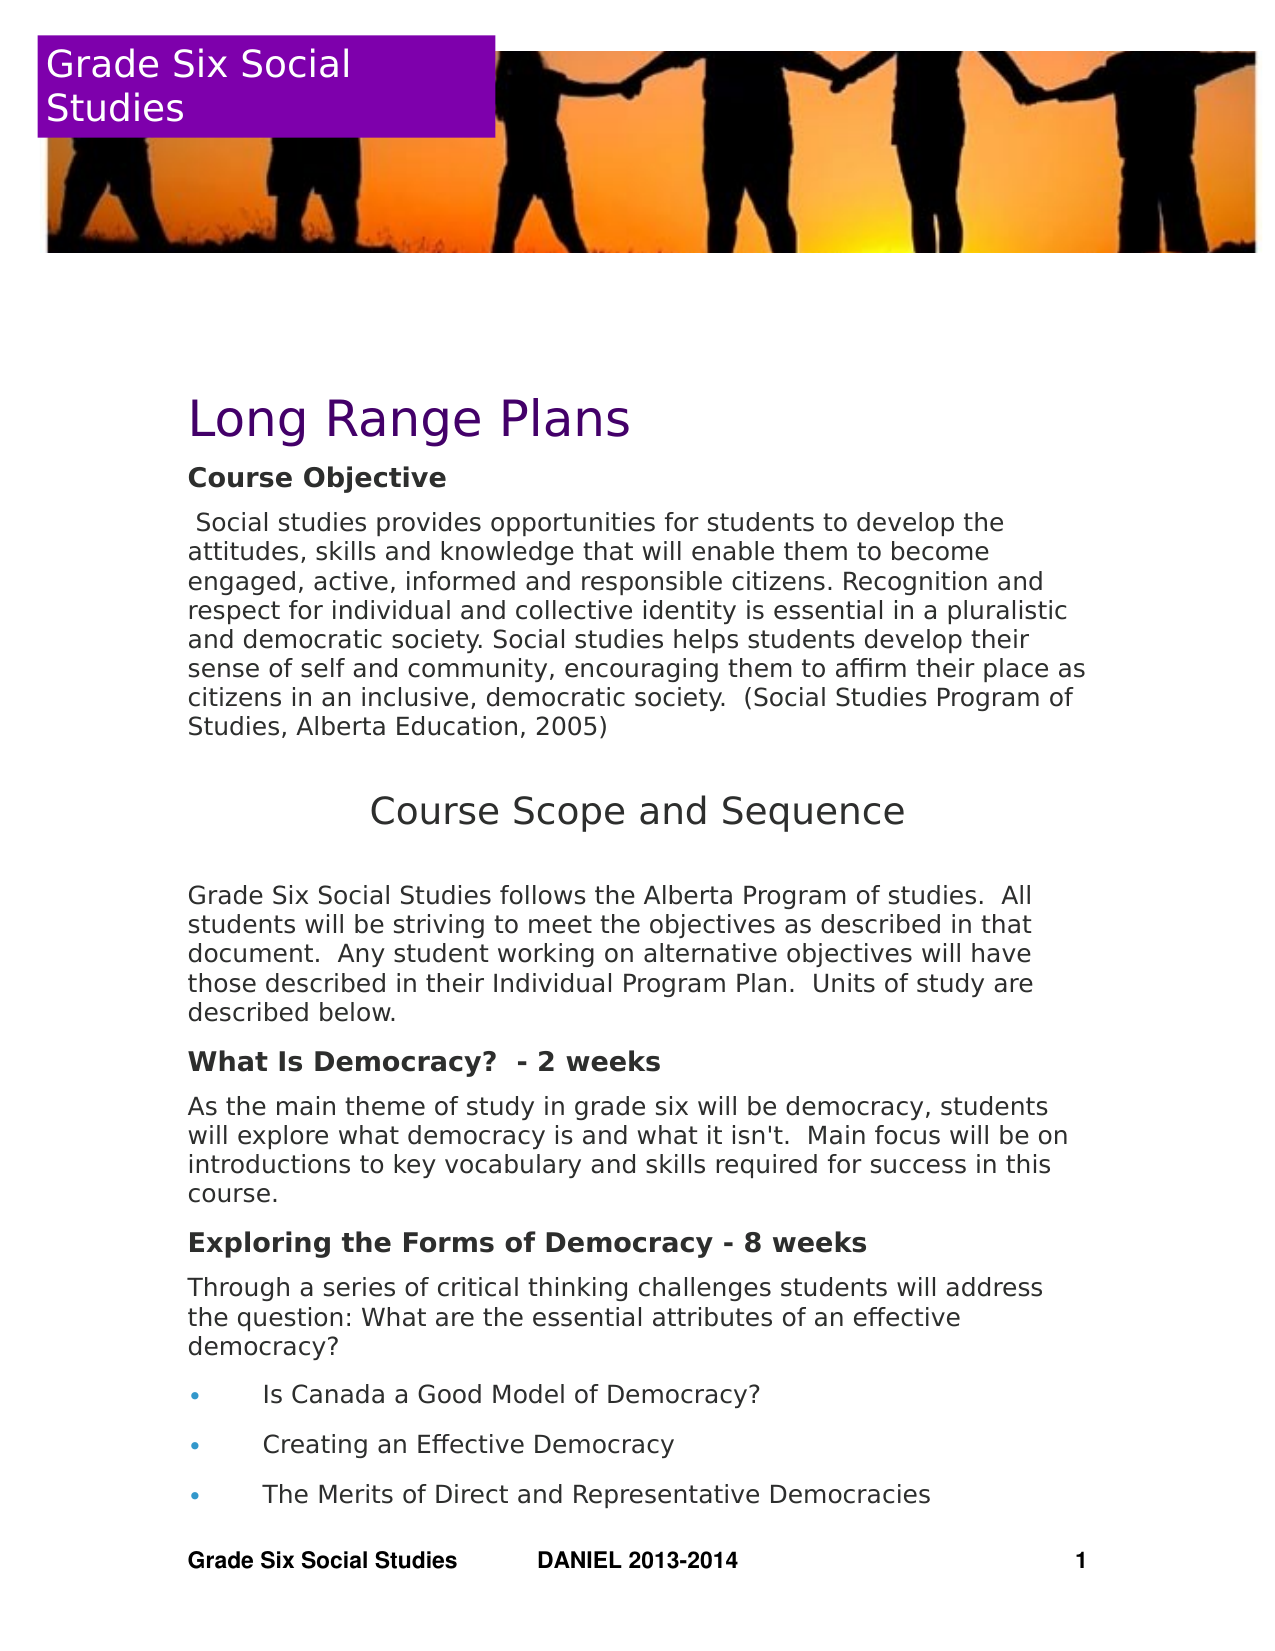 Grade 6 Social Studies Long Range Plans Resource Preview